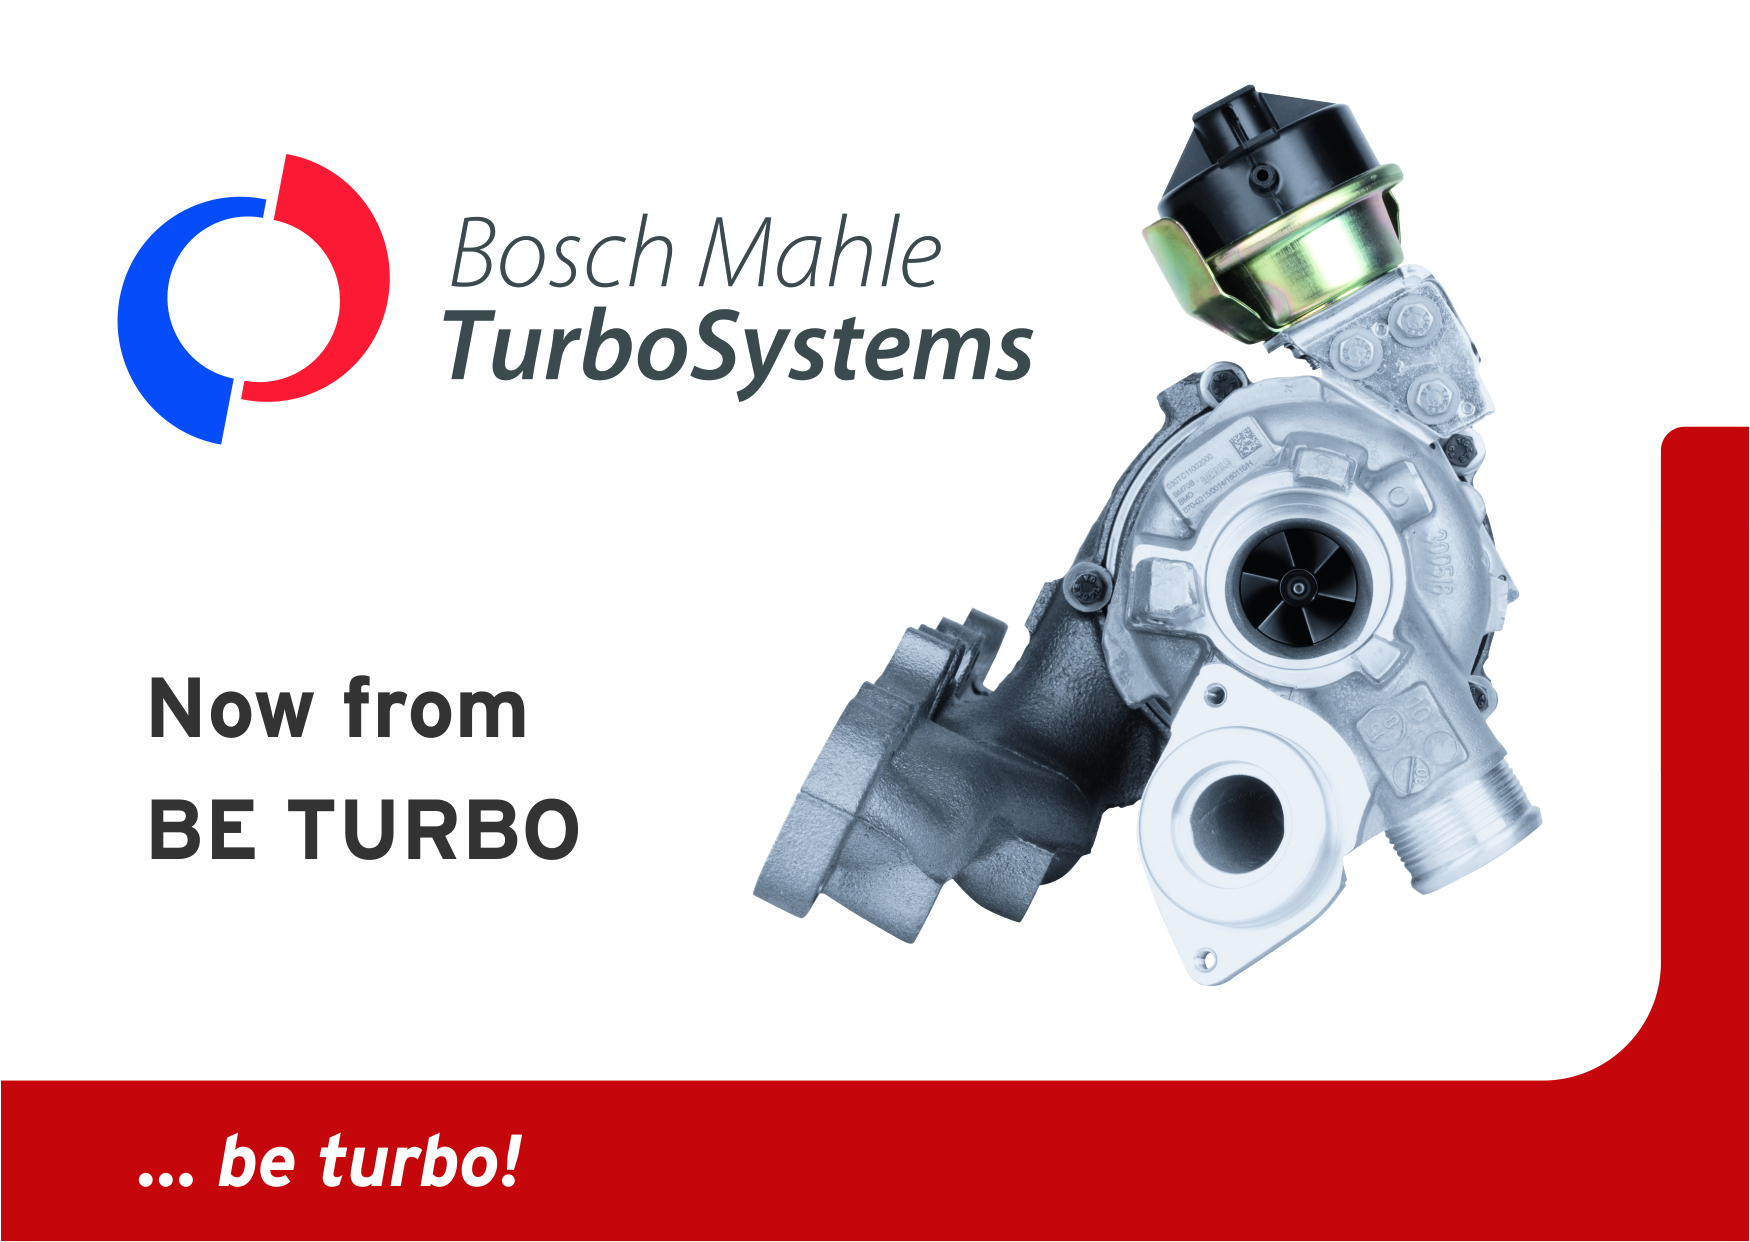 Bosch Mahle Turbo Systems Turbocharger from BE TURBO